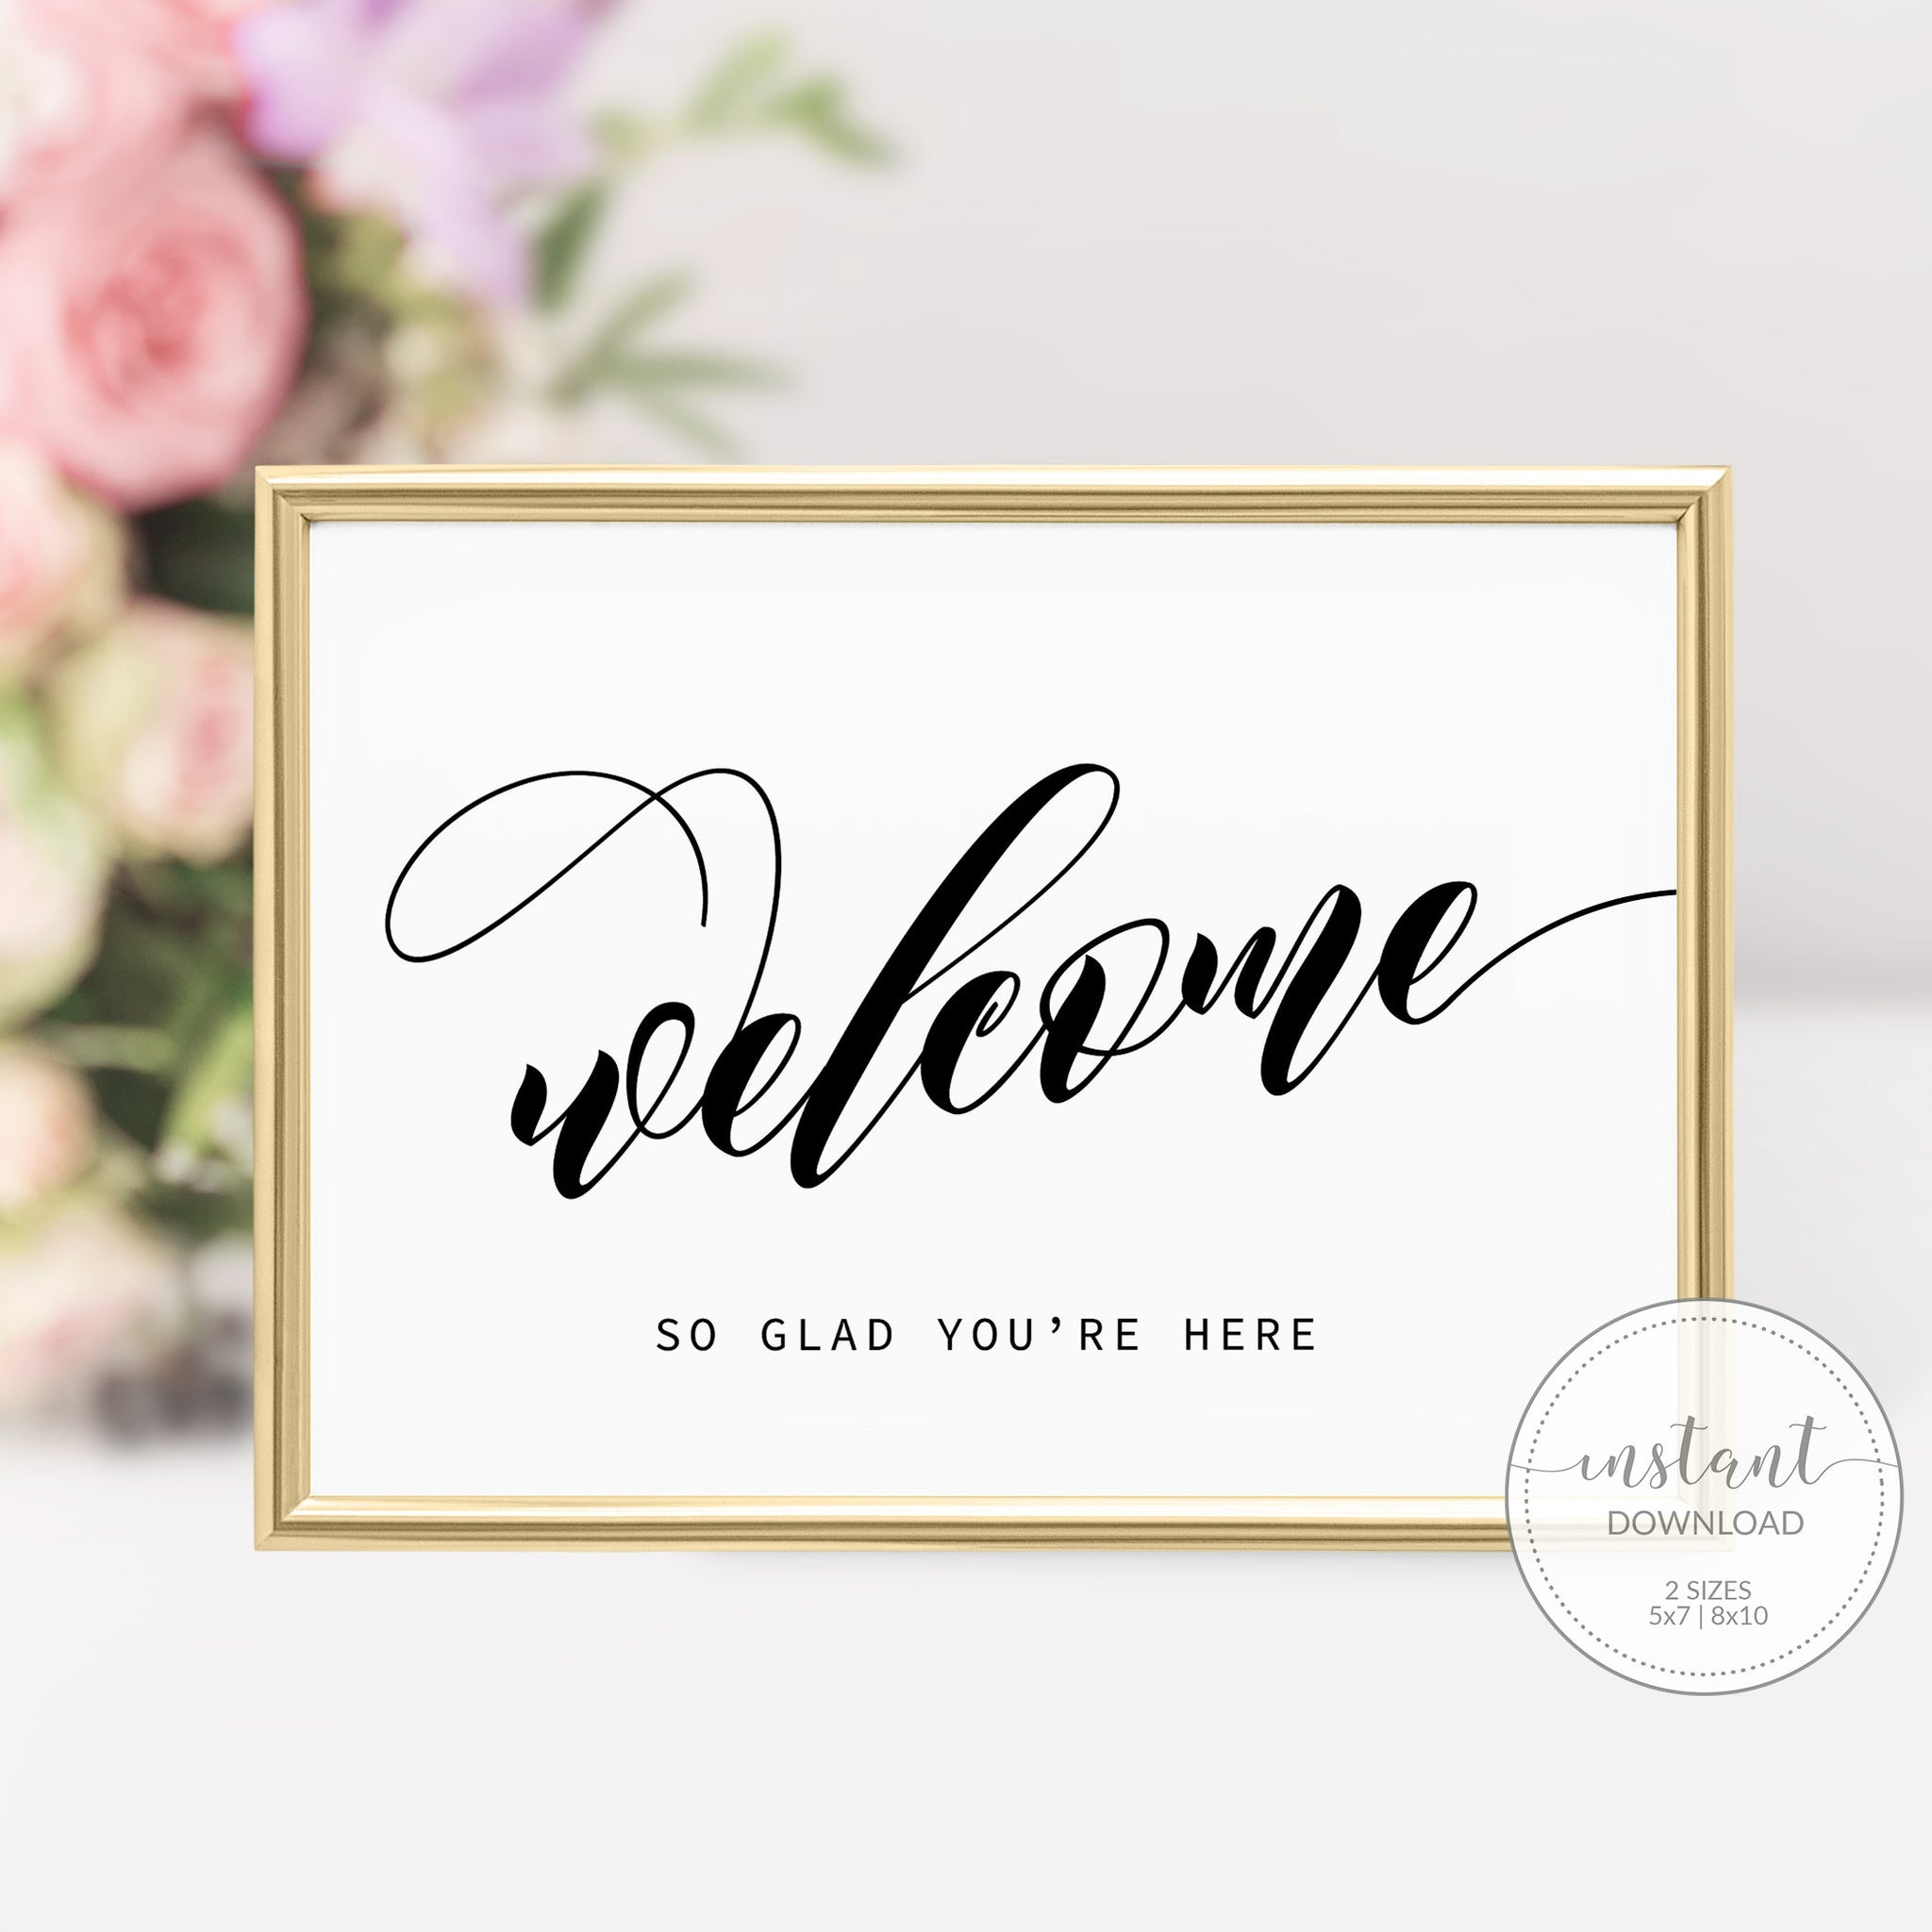 Printable Welcome Sign Black and White, Black Bridal Shower Welcome Sign, Black Baby Shower Welcome Sign, DIGITAL DOWNLOAD - SFB100